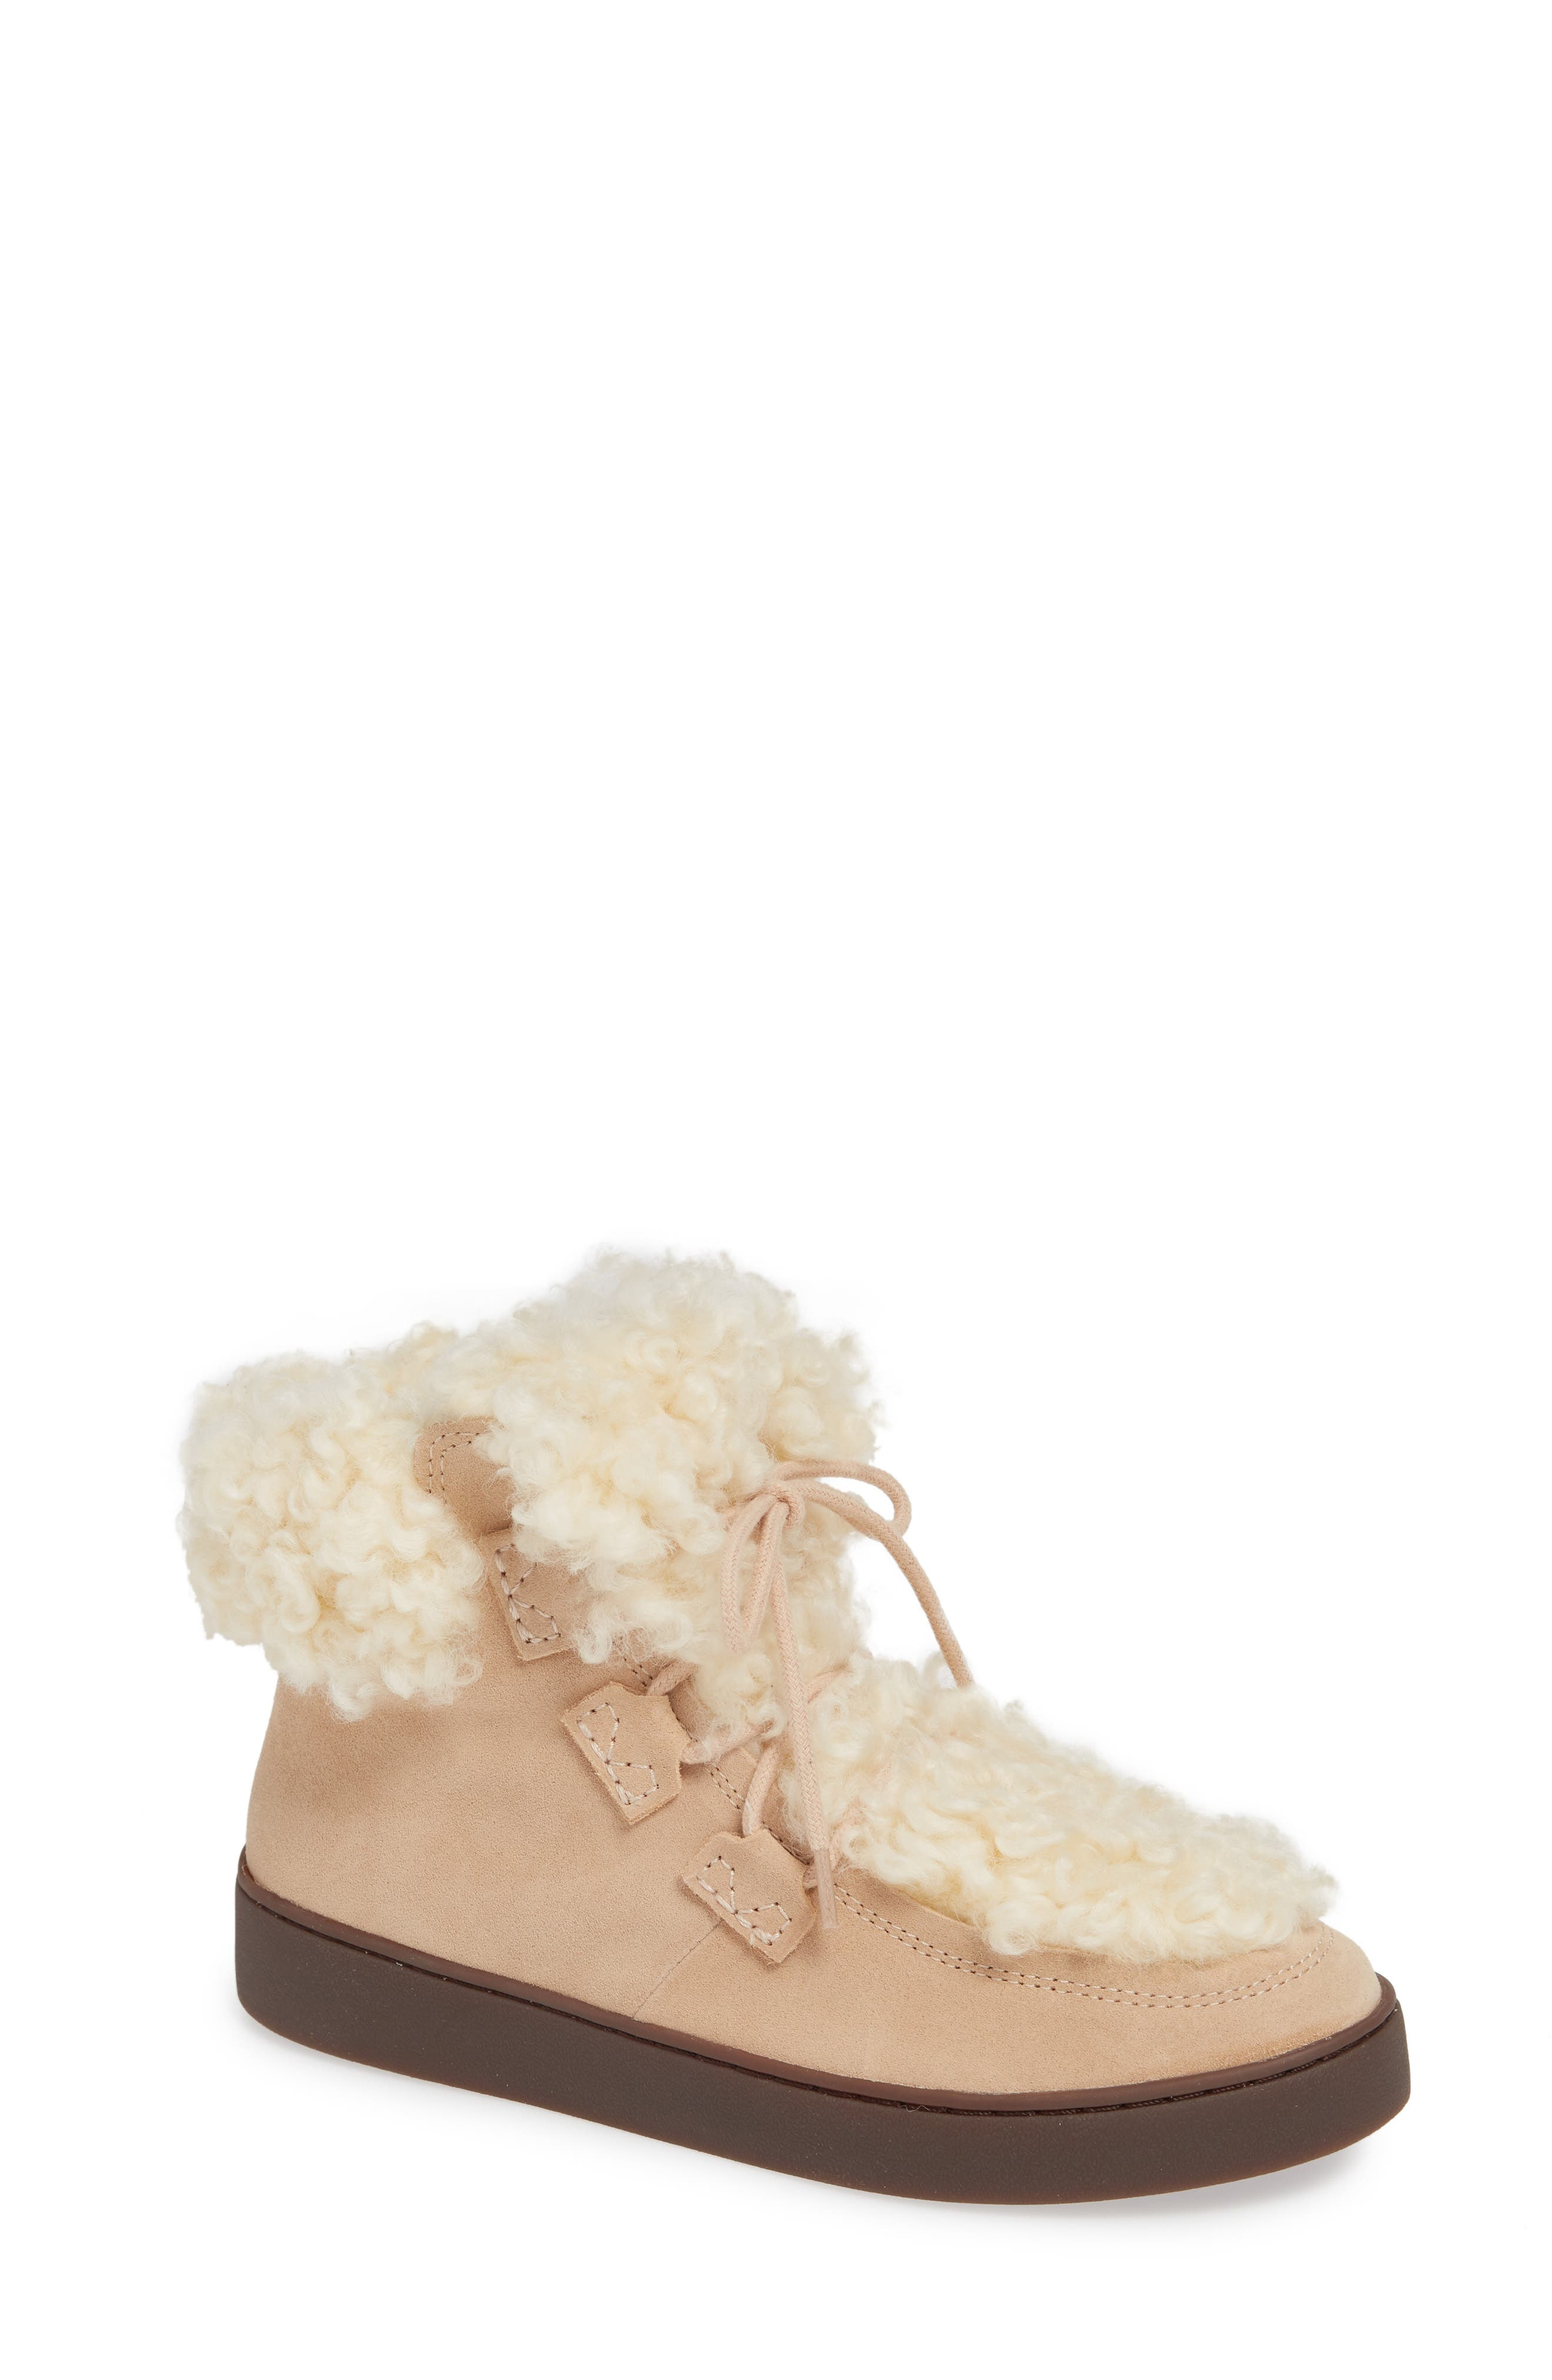 Oak Genuine Shearling Cuff Sneaker Bootie,                             Main thumbnail 1, color,                             SAND SUEDE